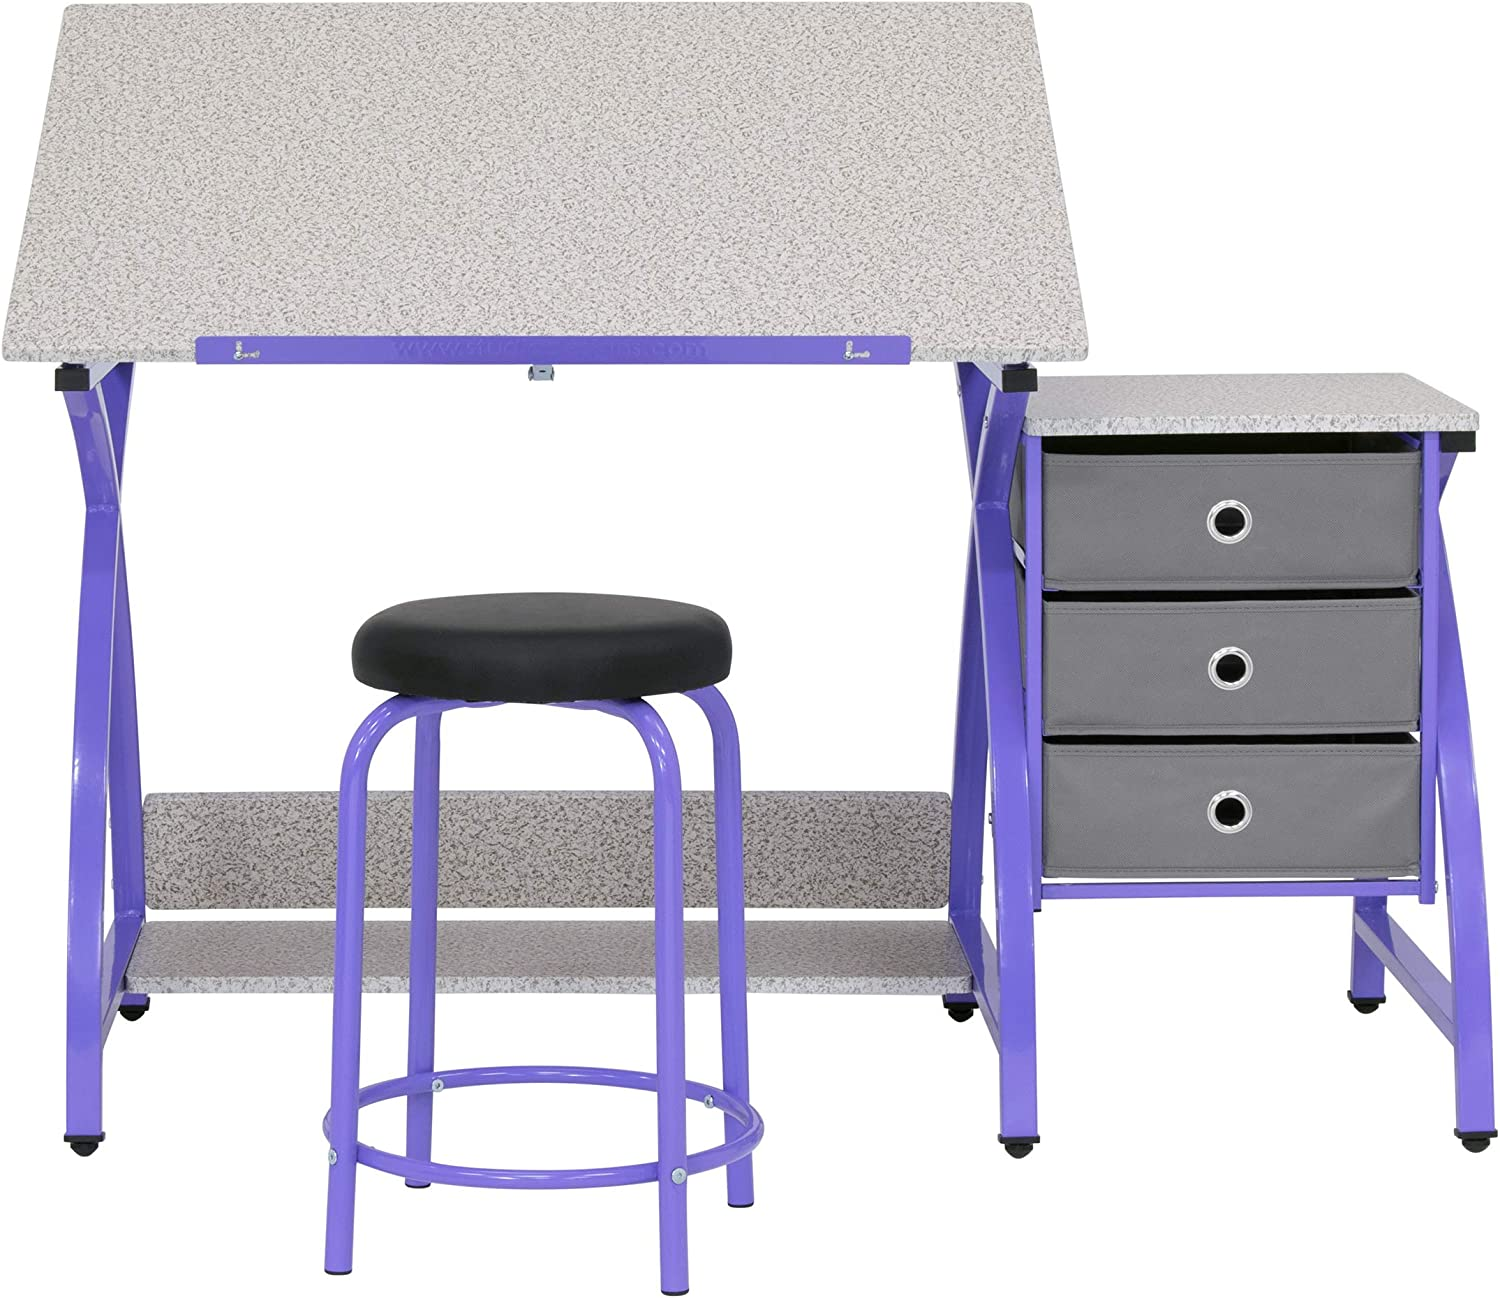 SD STUDIO DESIGNS 2 Piece Comet Center Plus, Craft Table and Matching Stool Set with Storage and Adjustable Top, Purple/Spatter Gray